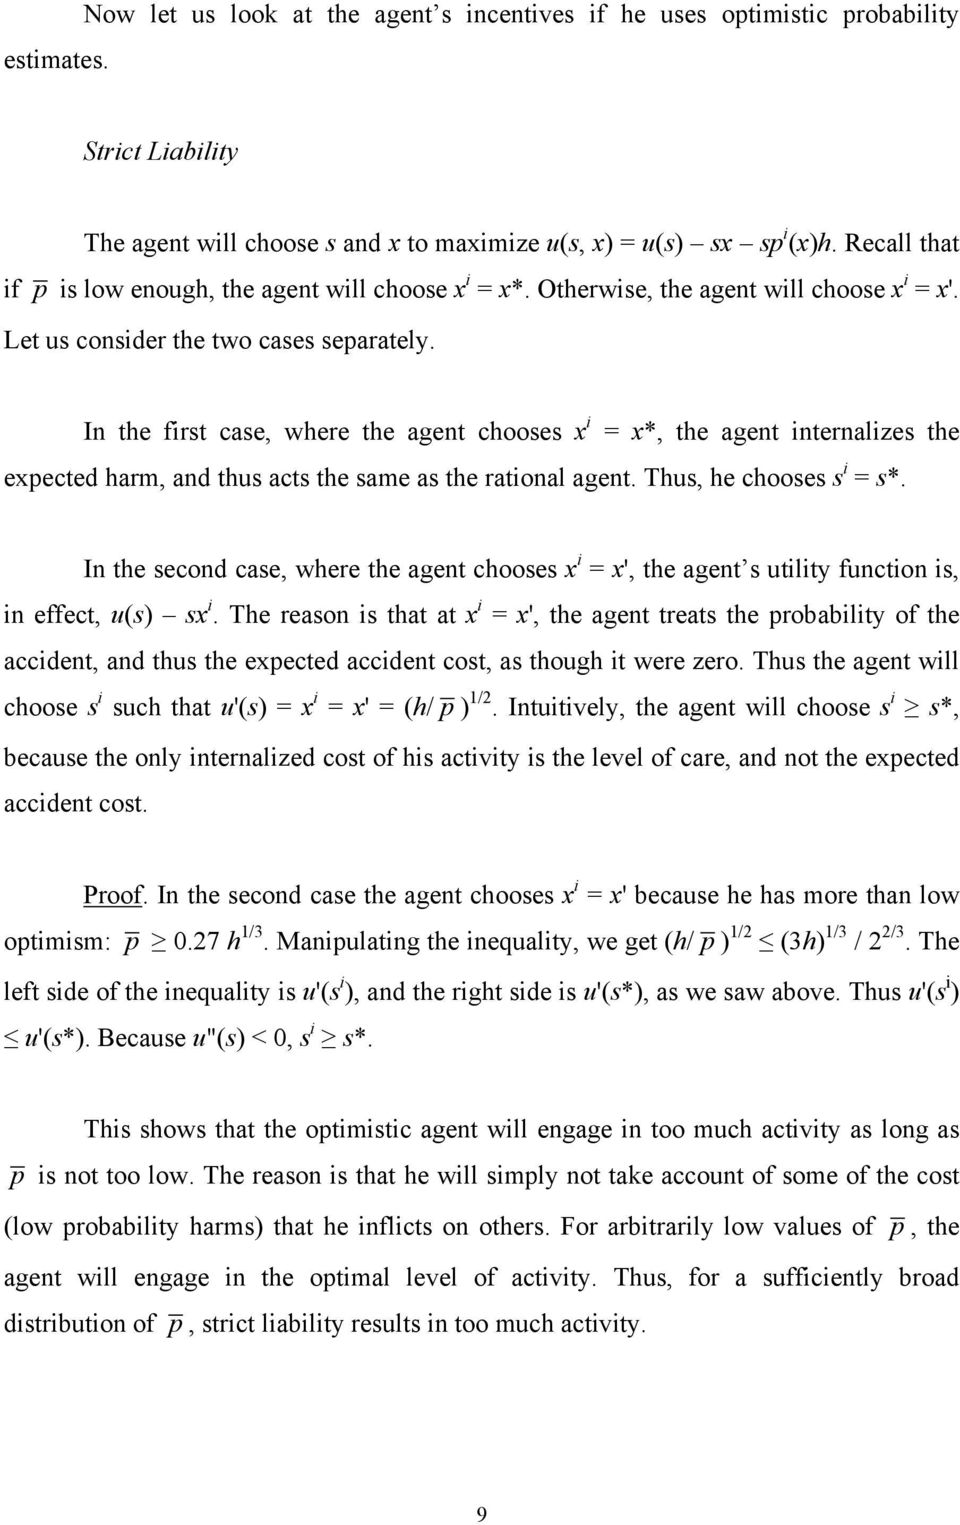 In the first case, where the agent chooses x i = x*, the agent internalizes the expected harm, and thus acts the same as the rational agent. Thus, he chooses s i = s*.